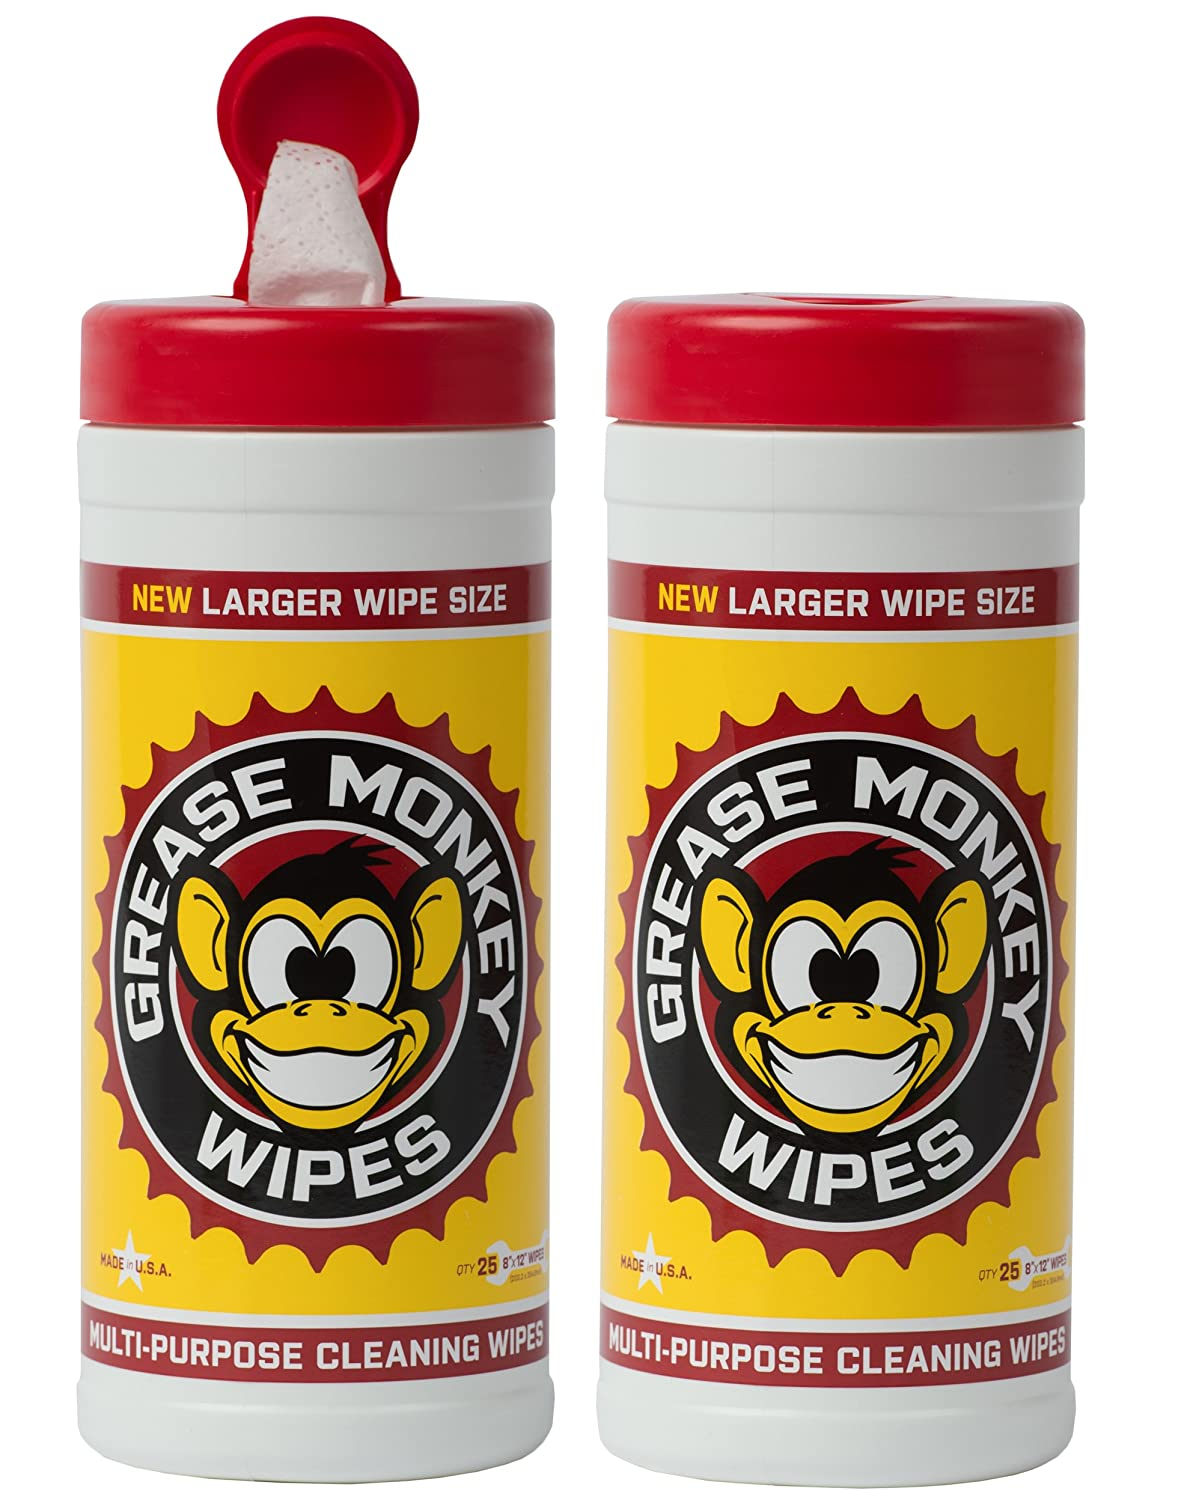 Grease Monkey Wipes Heavy Duty Multi Purpose Cleaning Wipes (Pack of 2), 25 Count Canister Beaumont Products Inc - Sporting goods 602072636